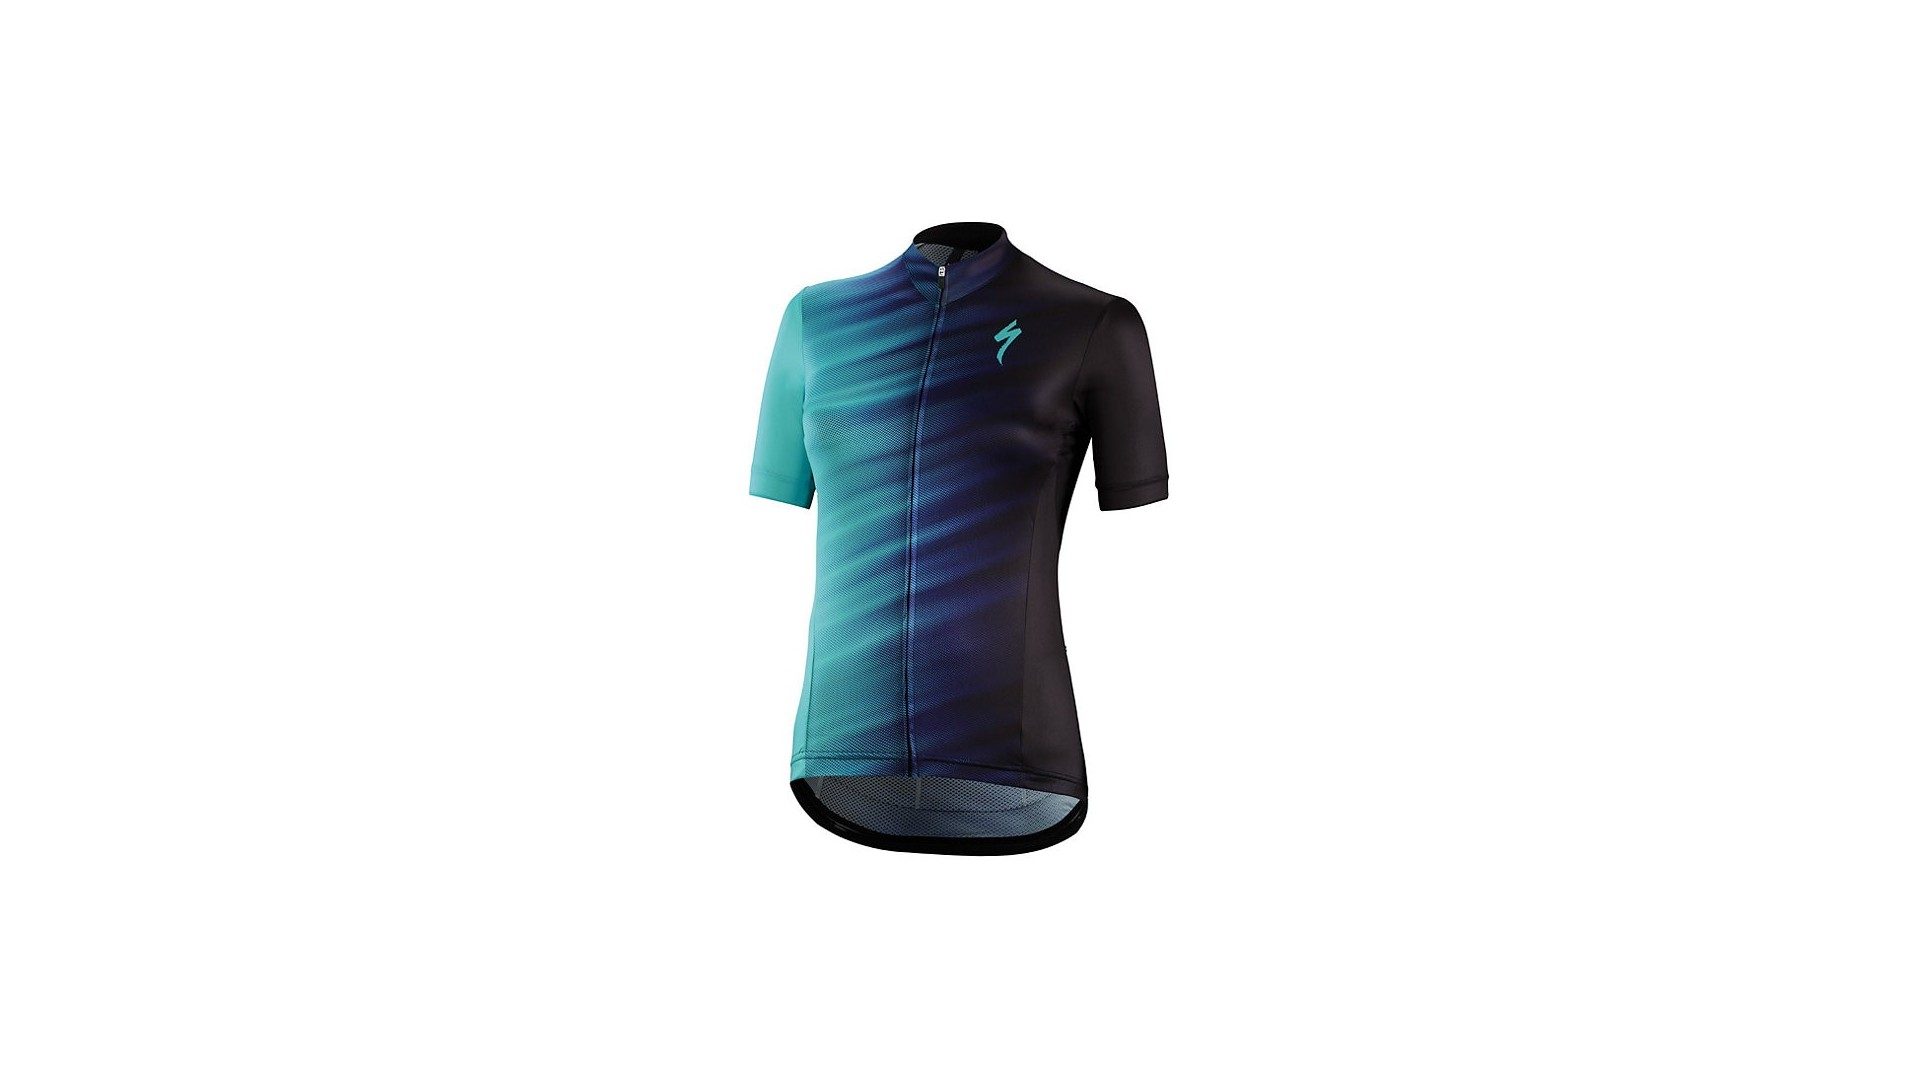 SL Expert Maillot Specialized Mujer Black/Turquoise Faze 1 IBKBike.es